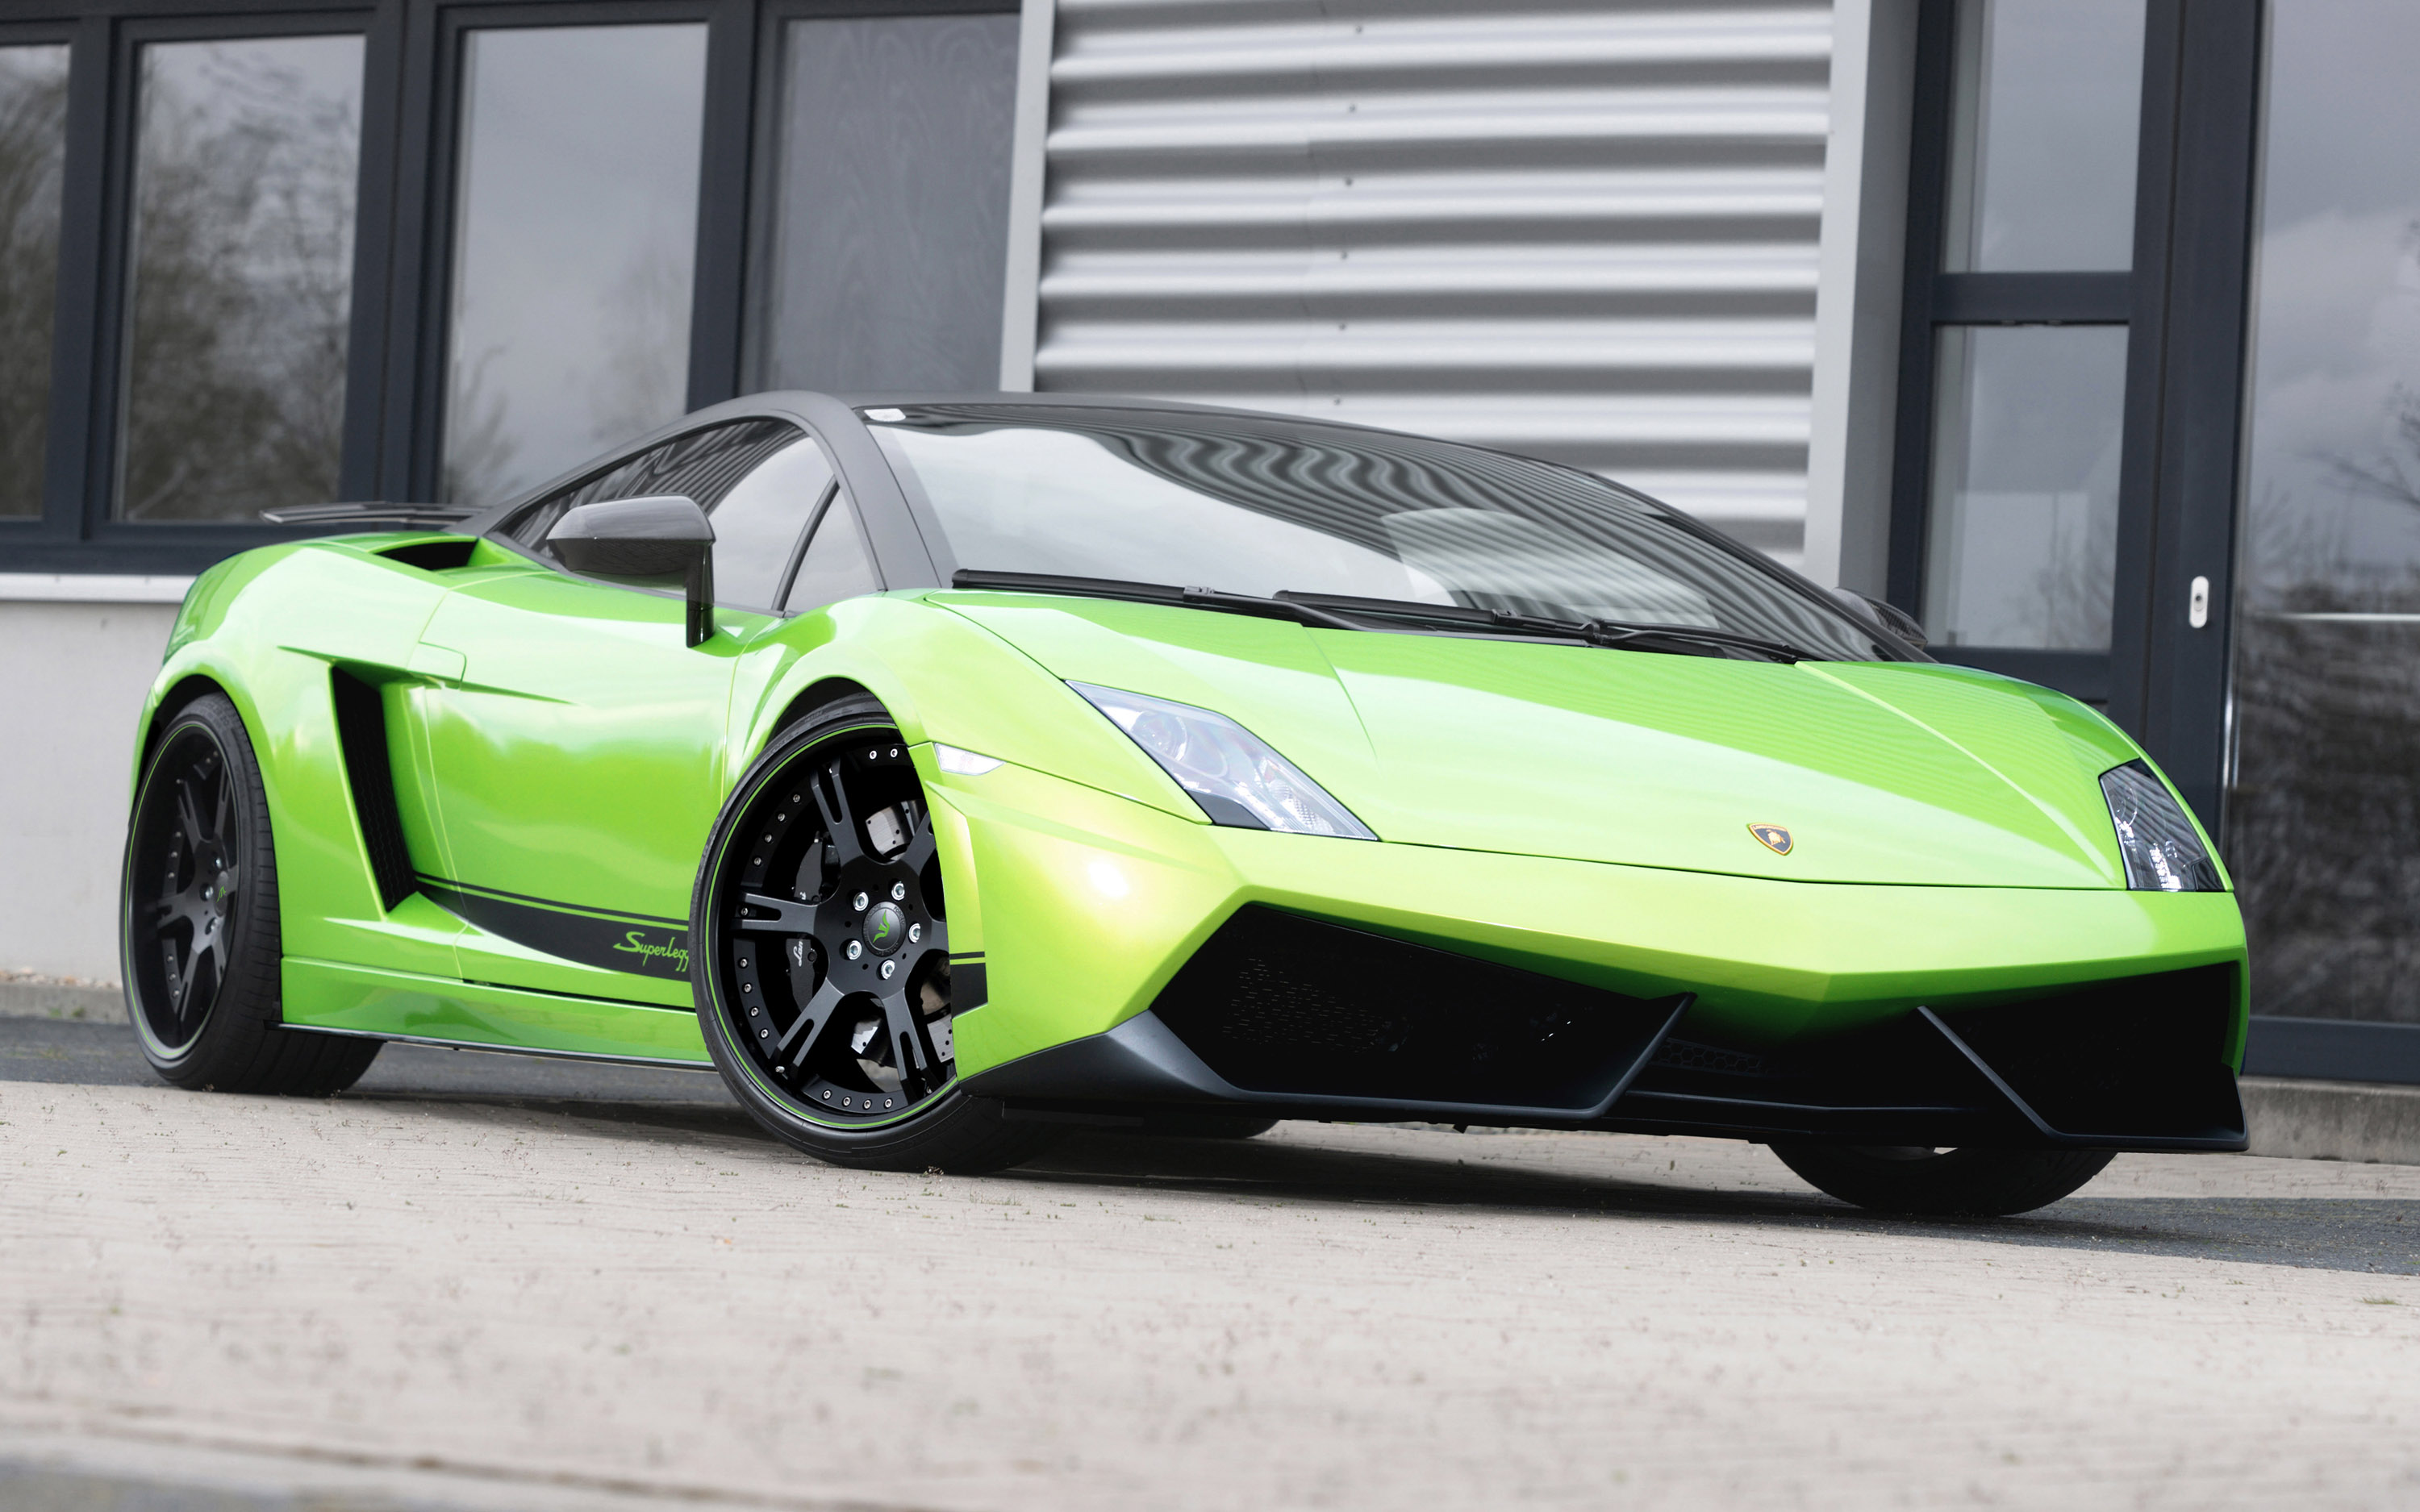 Marvelous Wheelsandmore Lamborghini Gallardo LP570 4 Superleggera